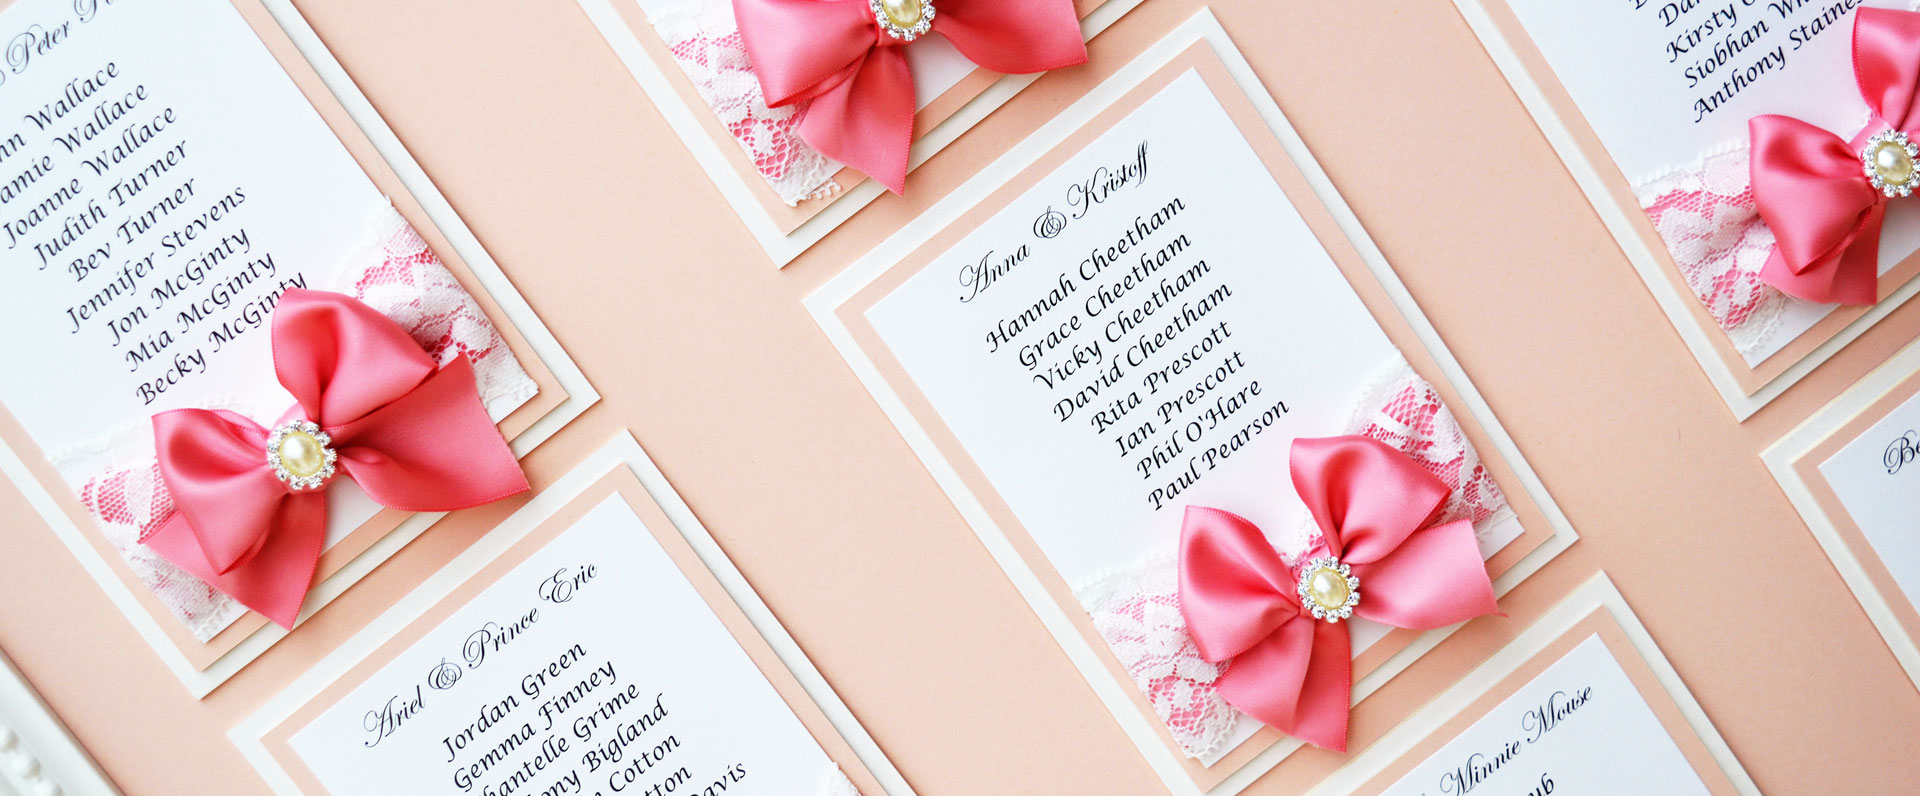 Framed pink satin bow on white lace wedding table plan